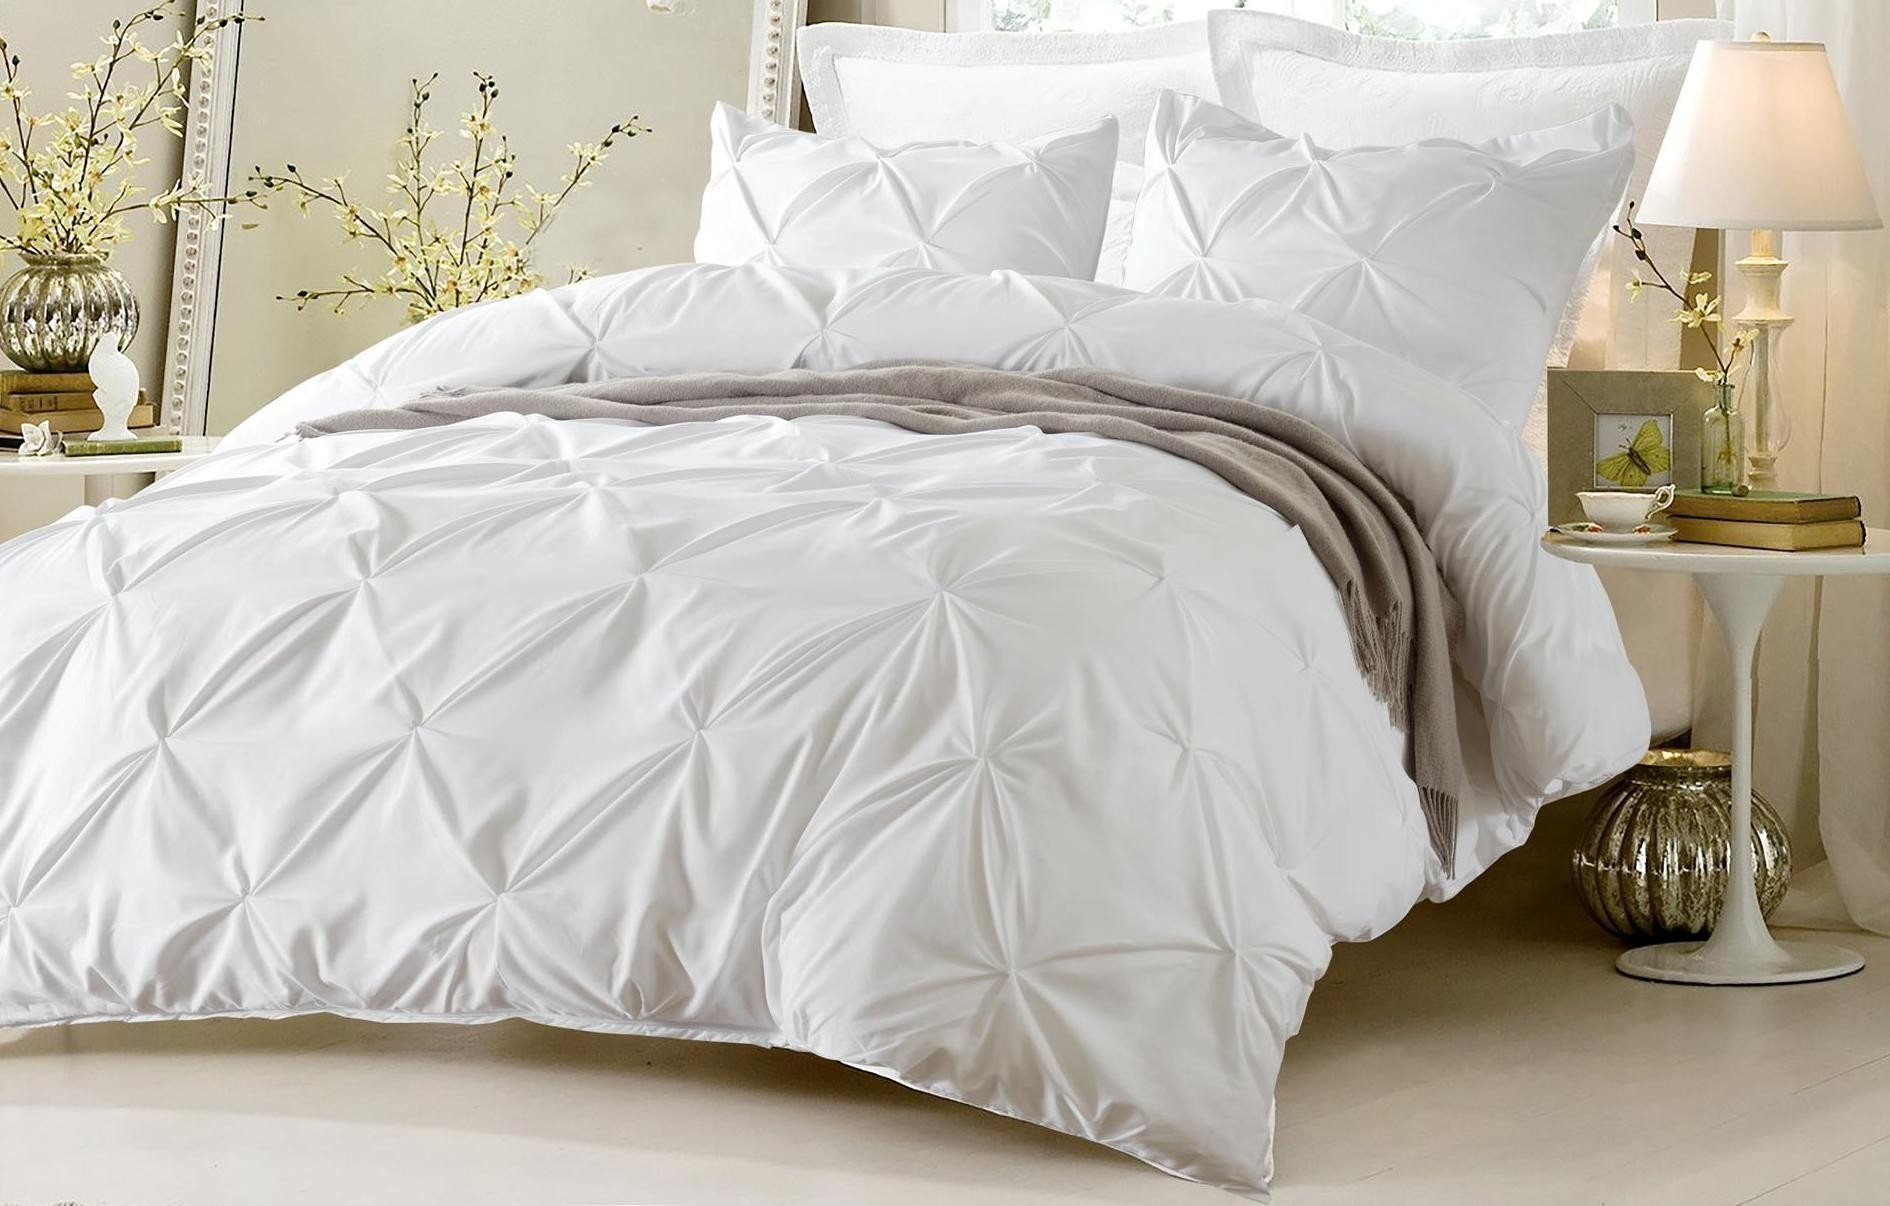 Kotton Culture Pinch Pleated Duvet Cover Zipper & Corner Ties 100% Egyptian Cotton 600 Thread Count Luxurious & Hypoallergenic Pintuck Decorative (California King/King, White)